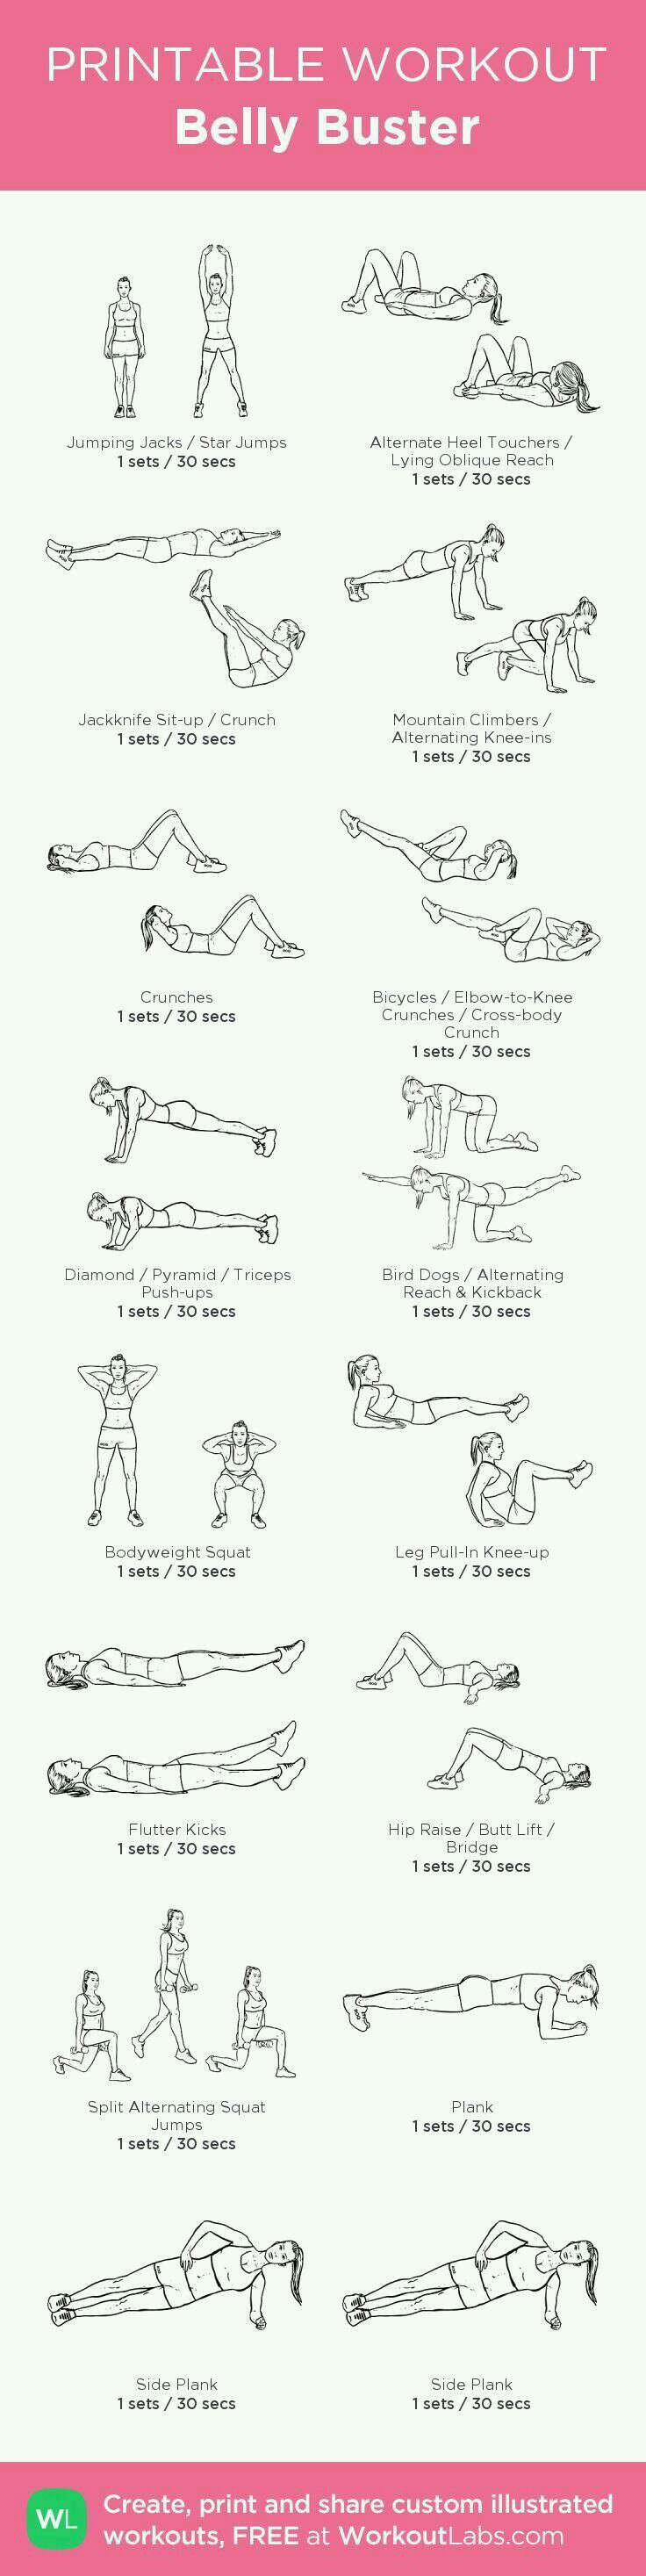 Belly Buster workout